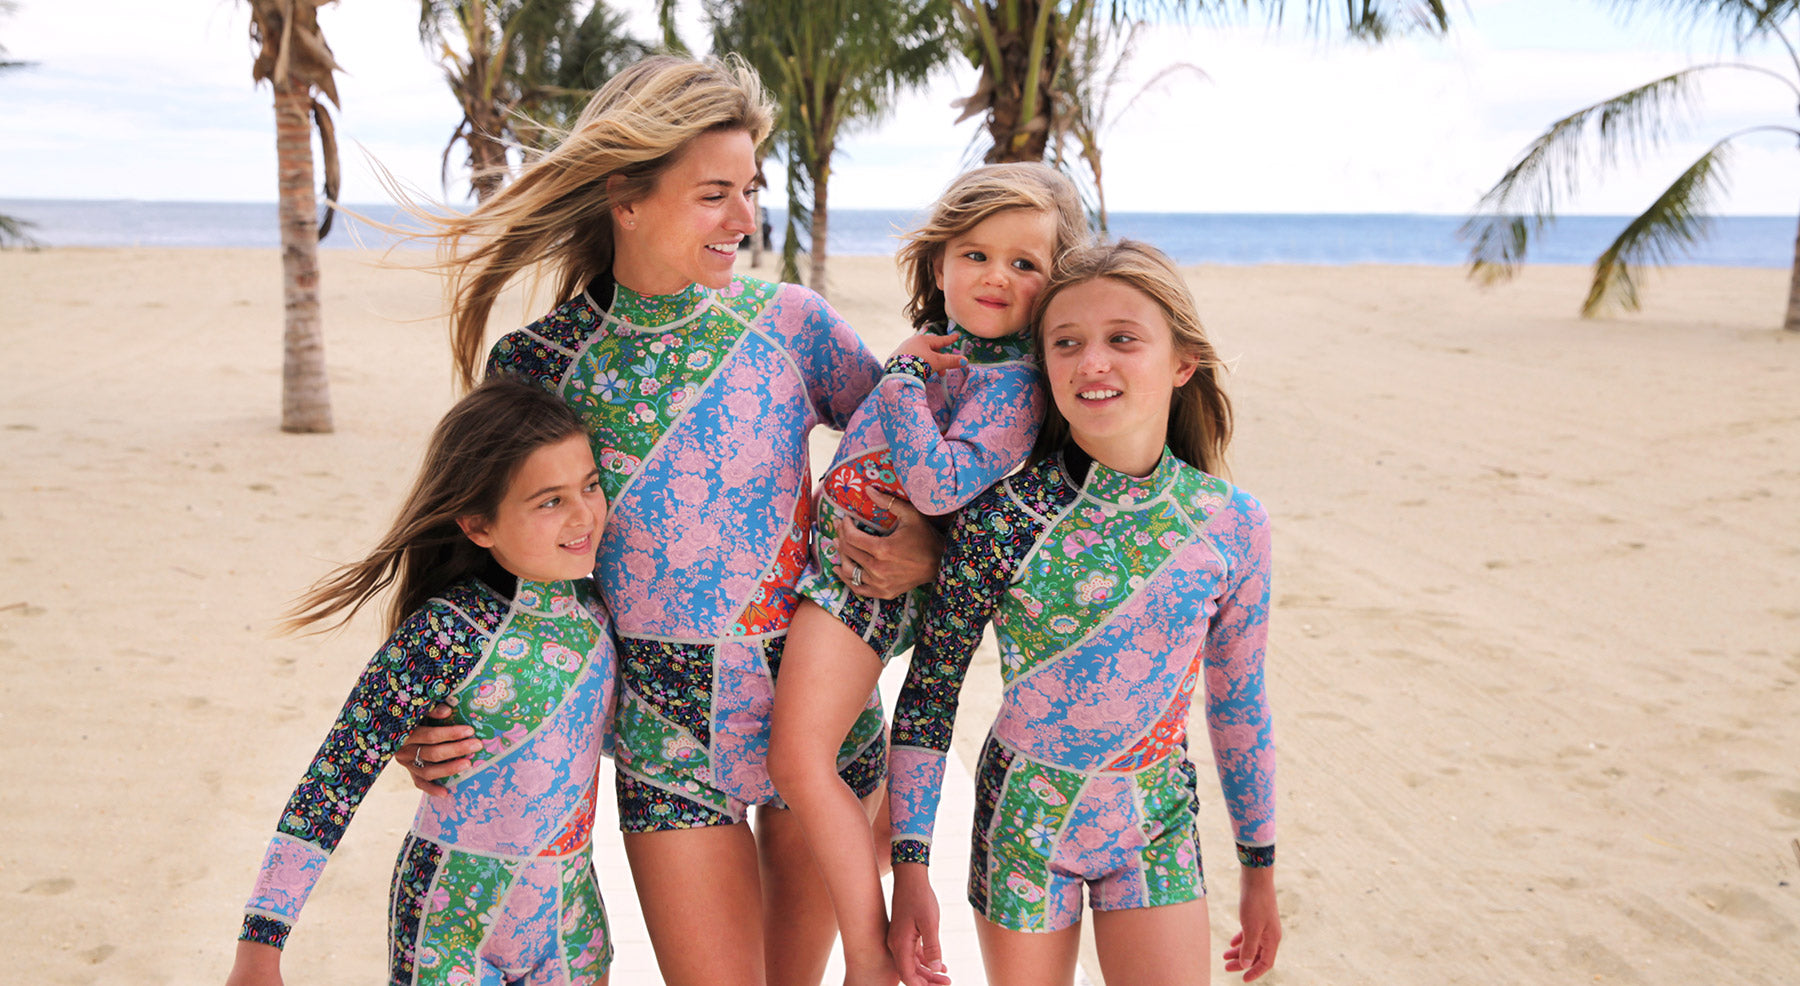 Kalleigh Floral Wetsuit and Girls Floral Wetsuits